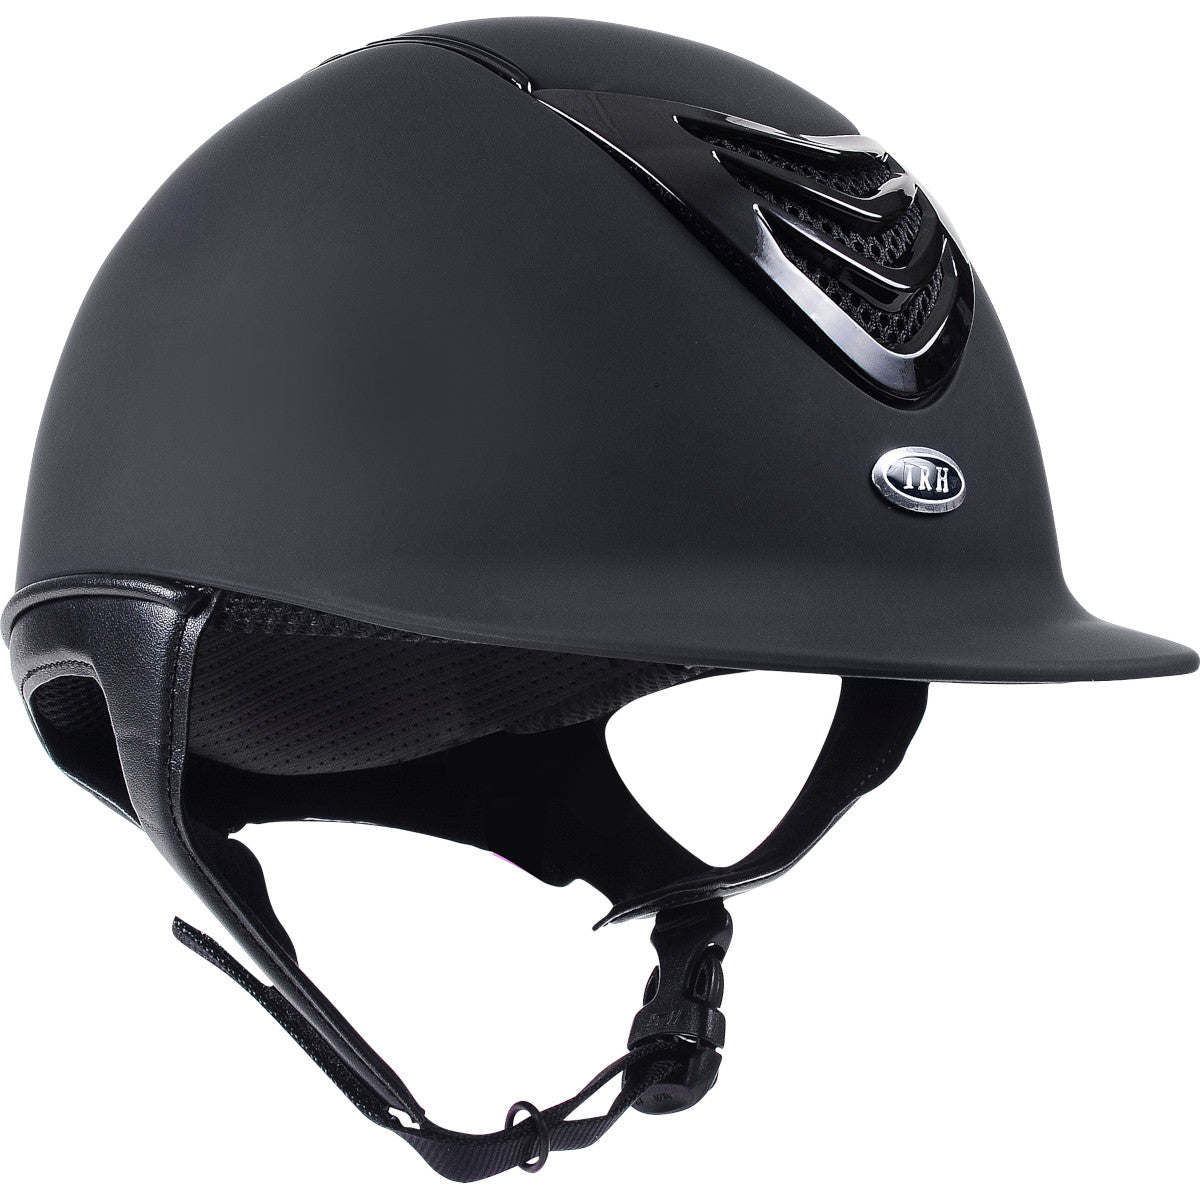 IRH 4G Matte Riding Helmet